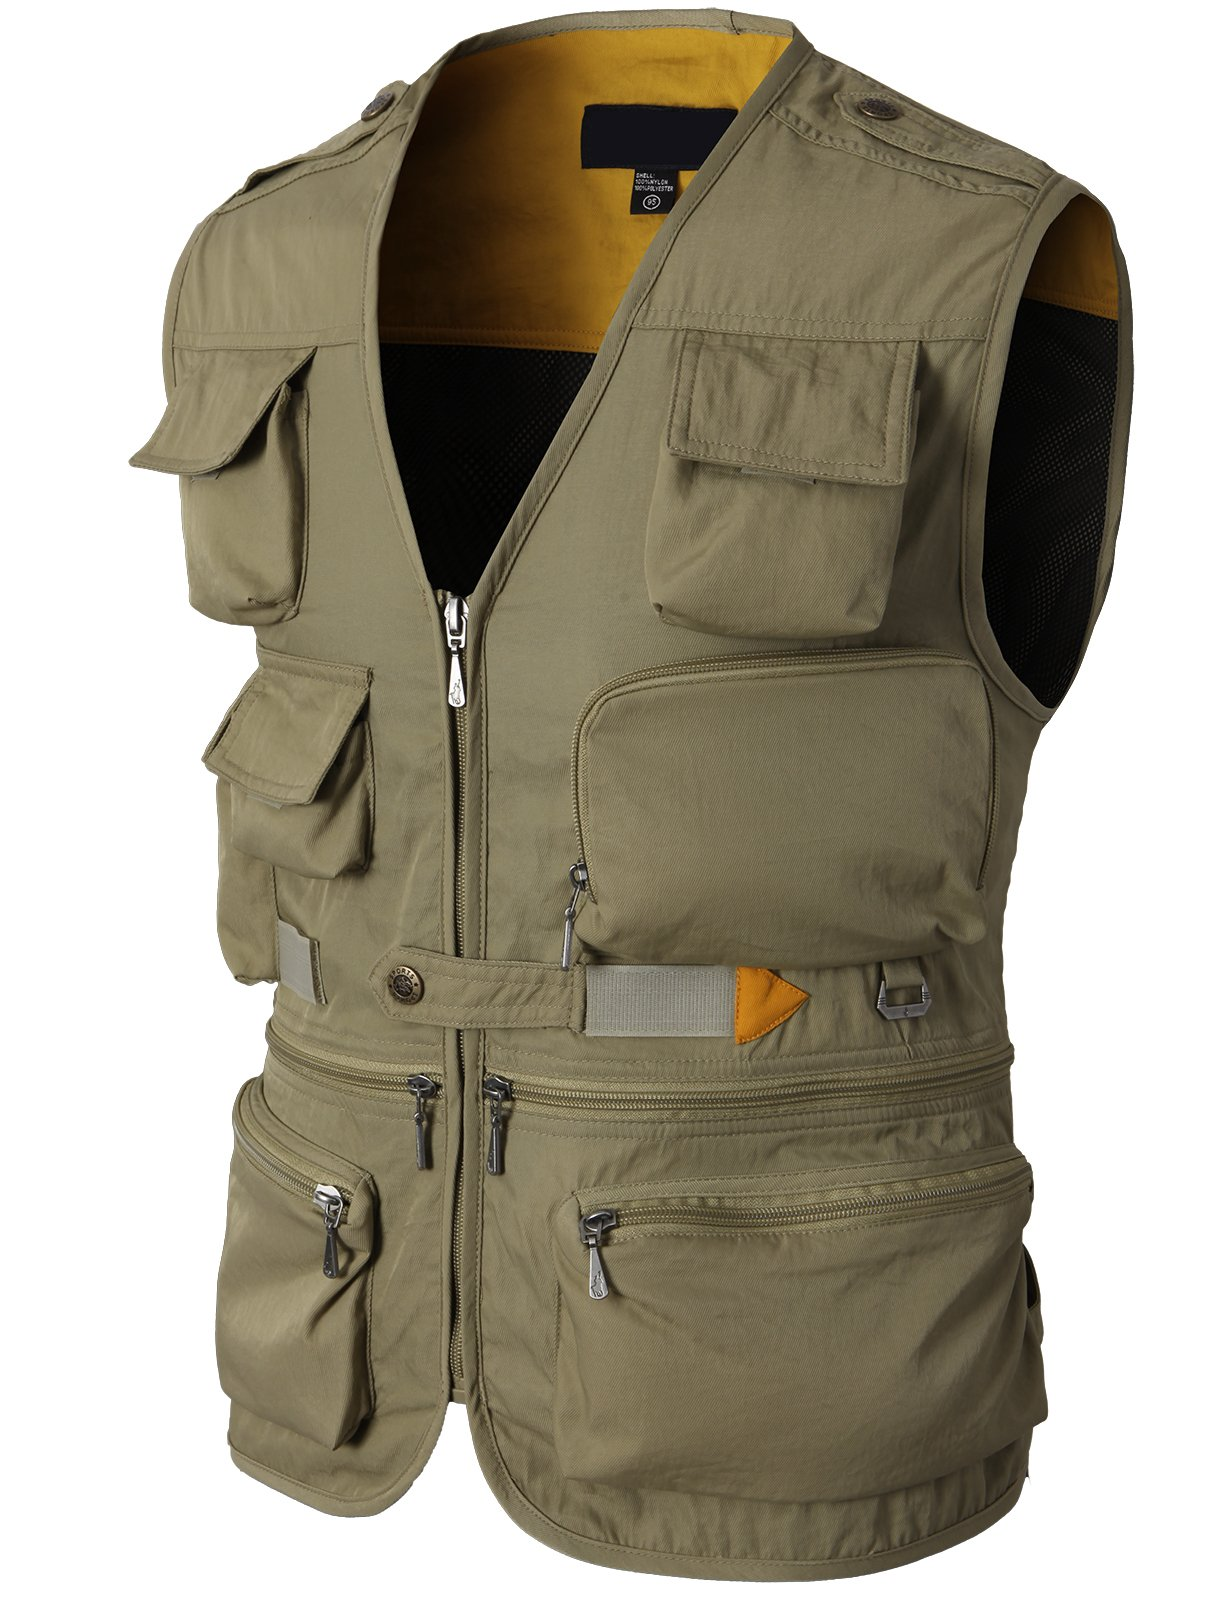 H2H Mens Fashion Work Utility Hunting Travels Sports Vest with Multiple Pockets Beige US L/Asia XL (KMOV0116)